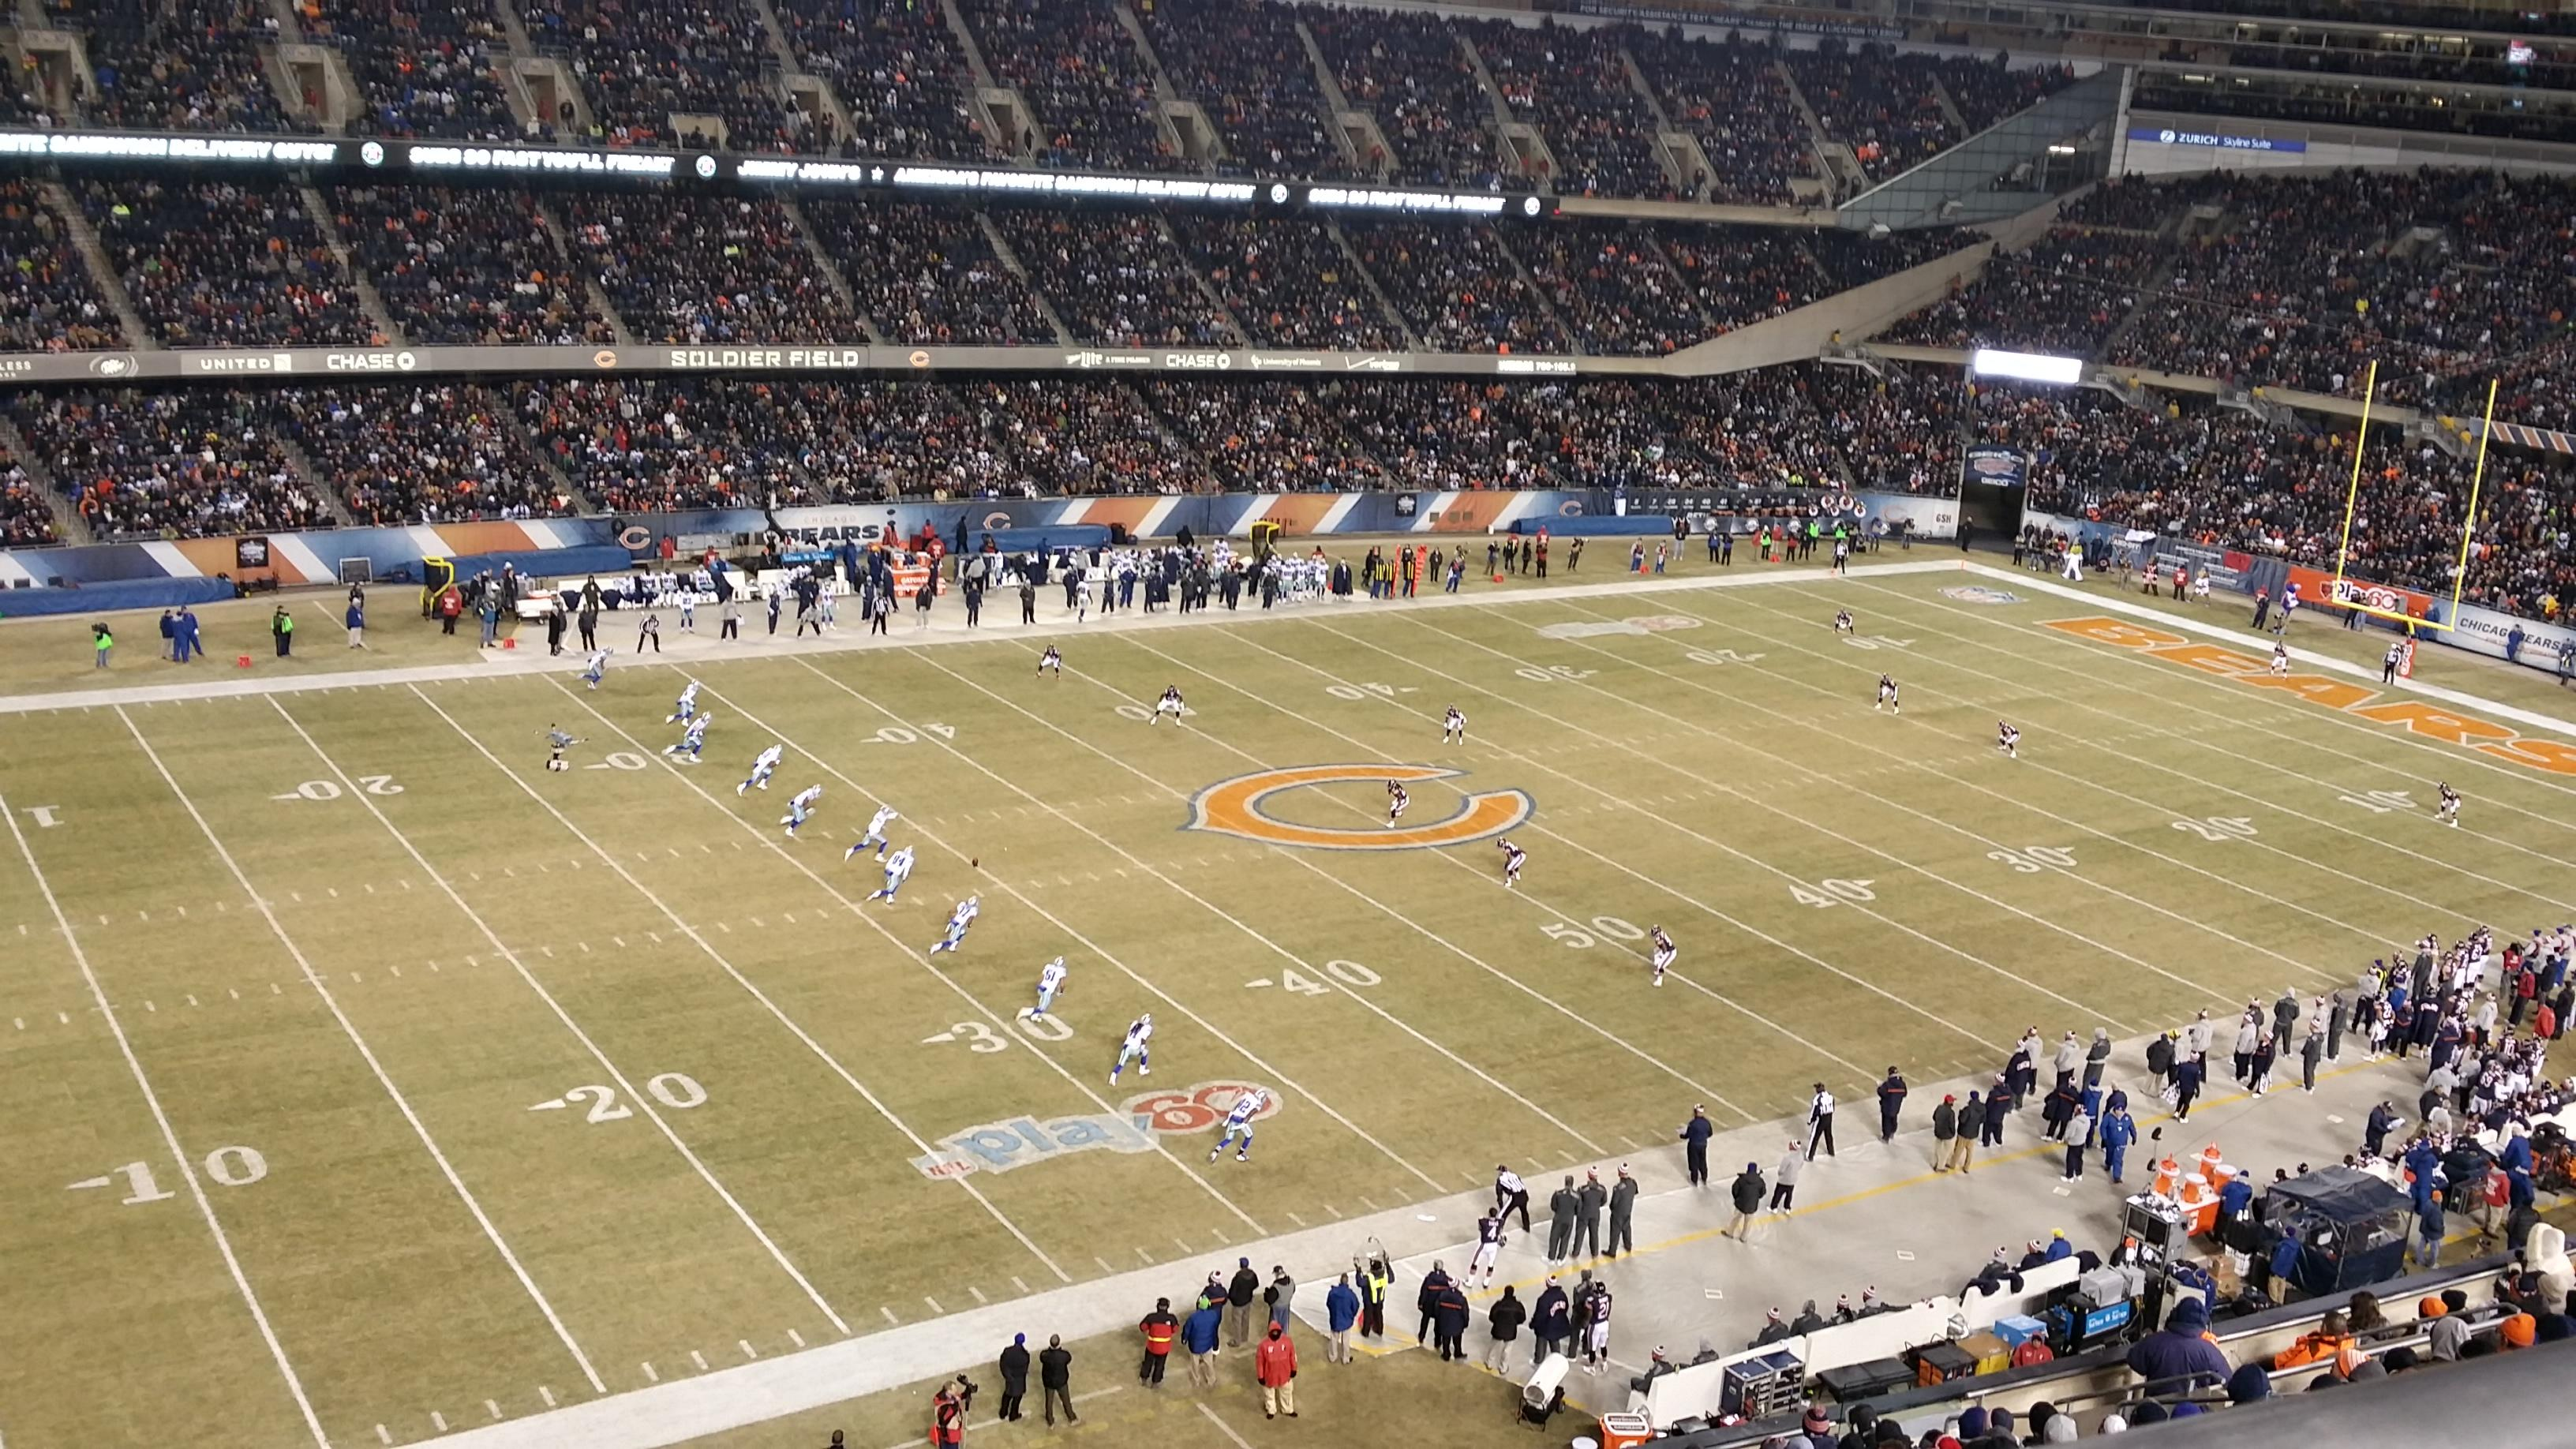 Soldier Field Section 441 Row 1 Seat 5